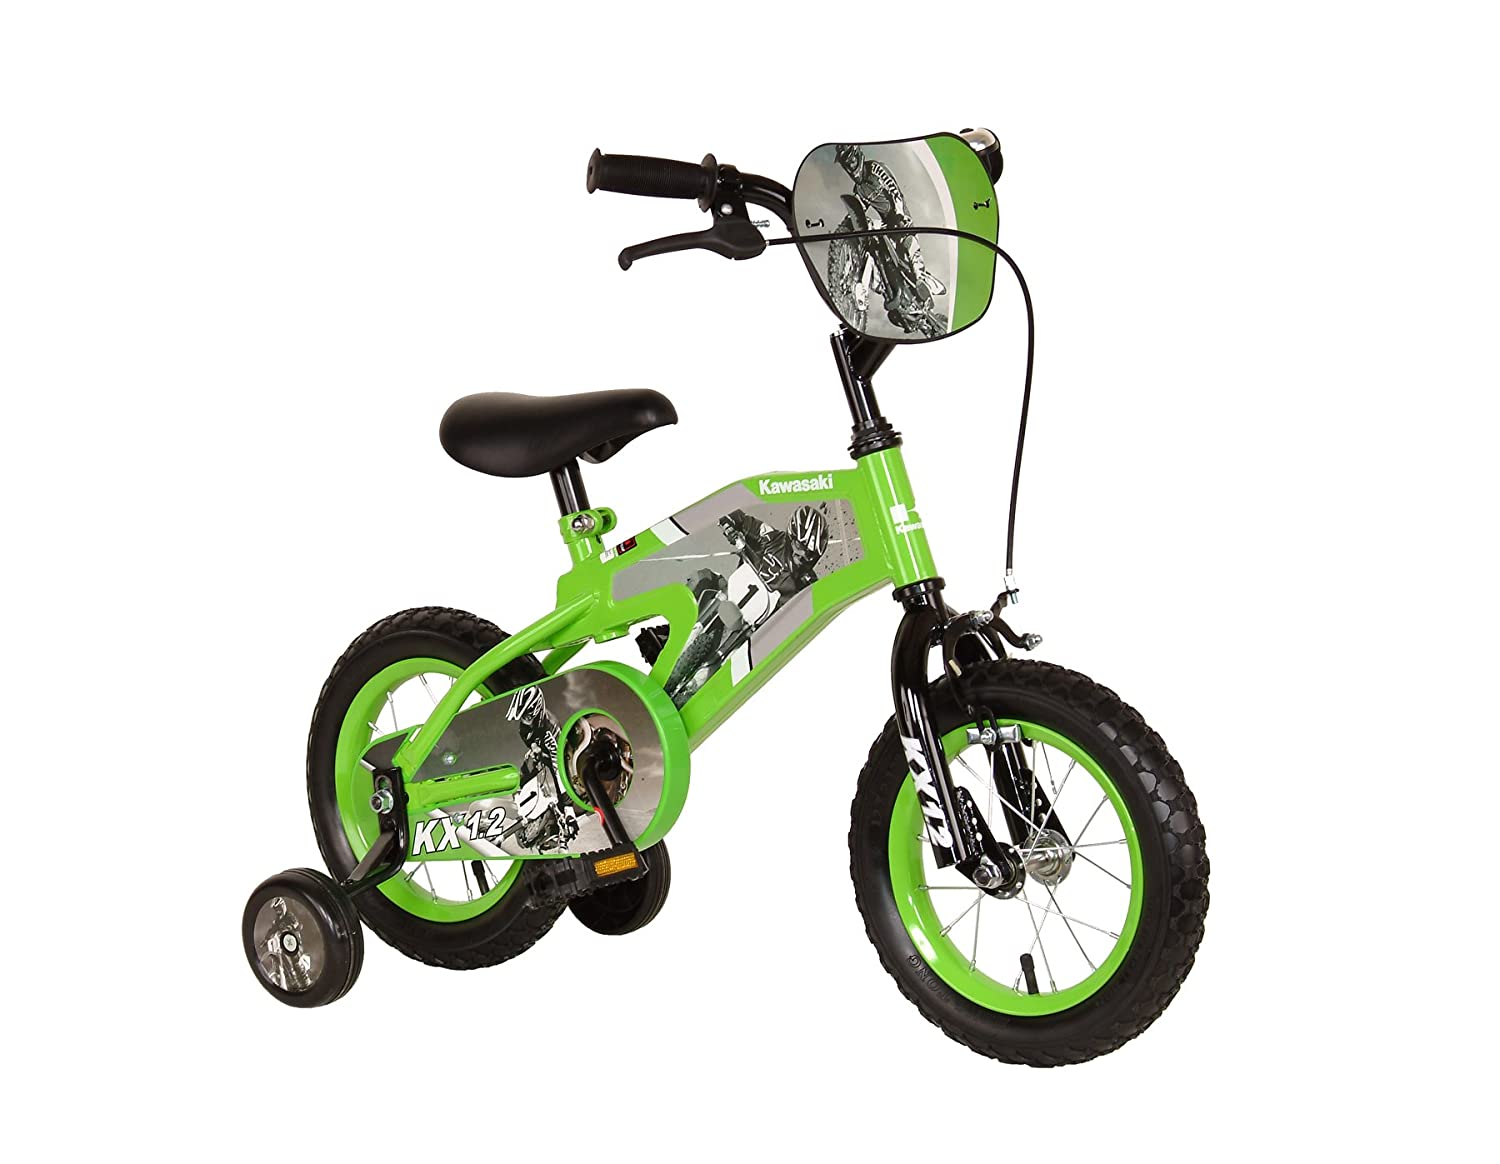 Kawasaki Monocoque Kid S Bike 12 Inch Wheels 8 Inch